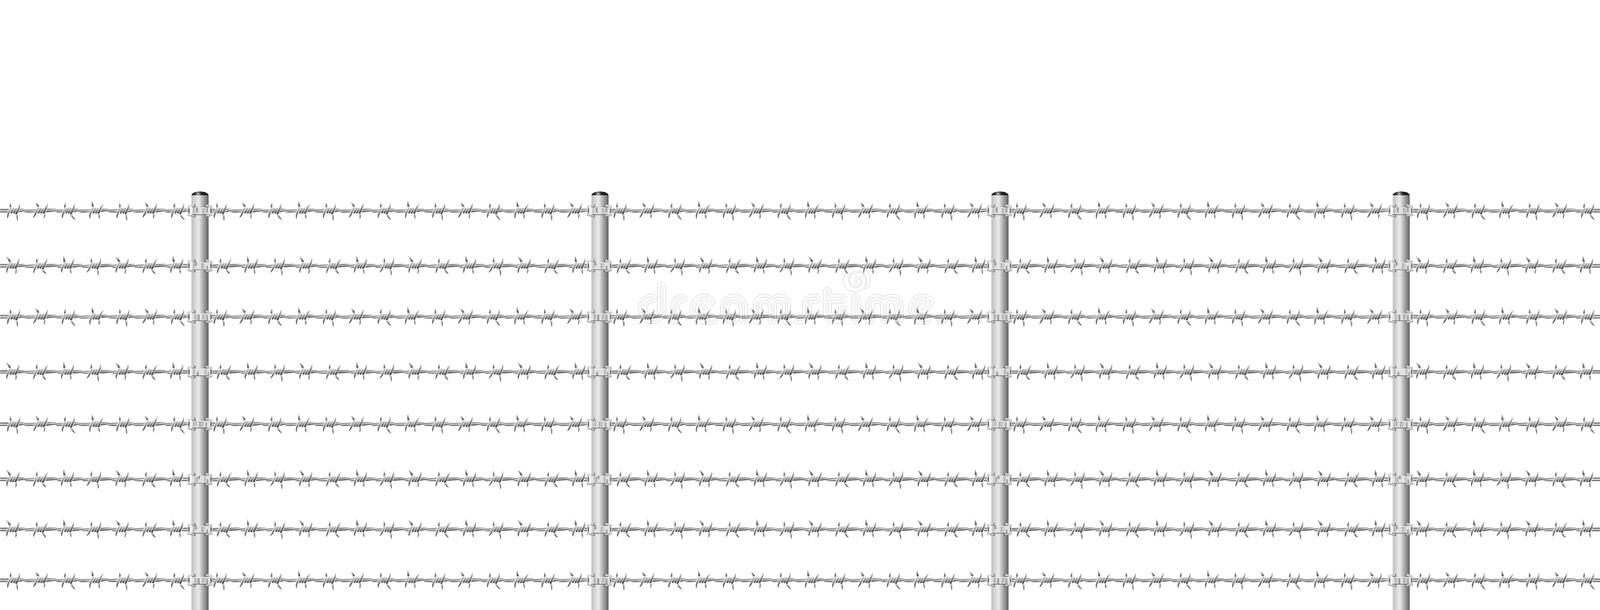 Barb Wire Fence Endless. Barb wire fence, seamless expandable - isolated vector illustration on white background vector illustration